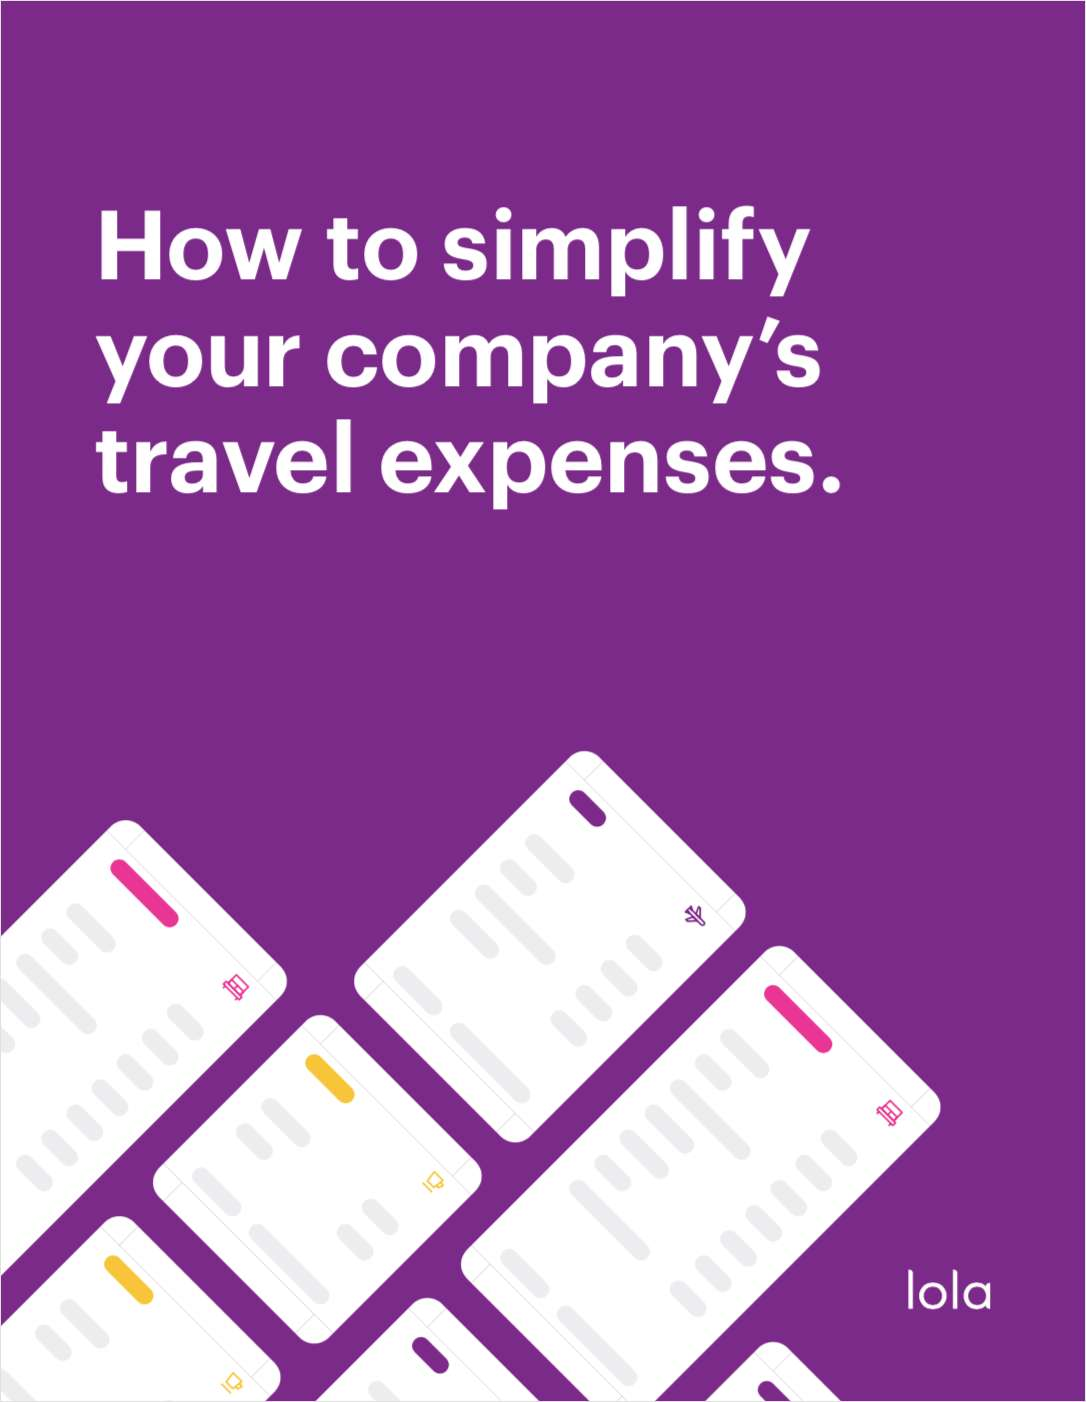 How to Simplify Your Company's Travel Expenses